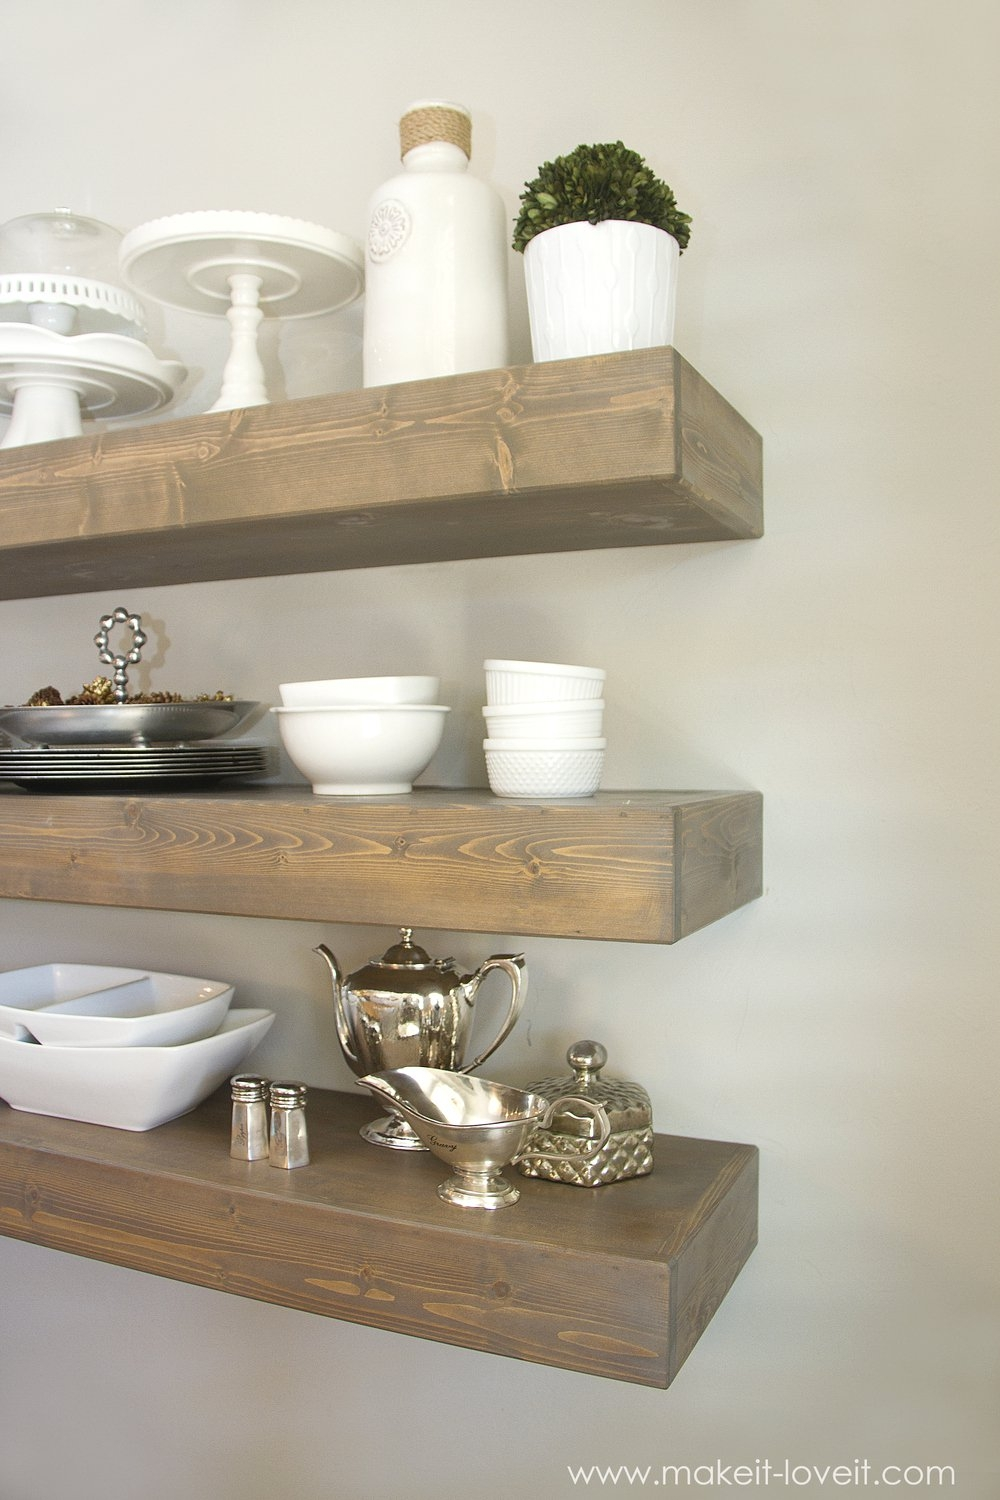 How To Build Simple Floating Shelves For Any Room In The House Within Floating Shelves (Image 12 of 15)